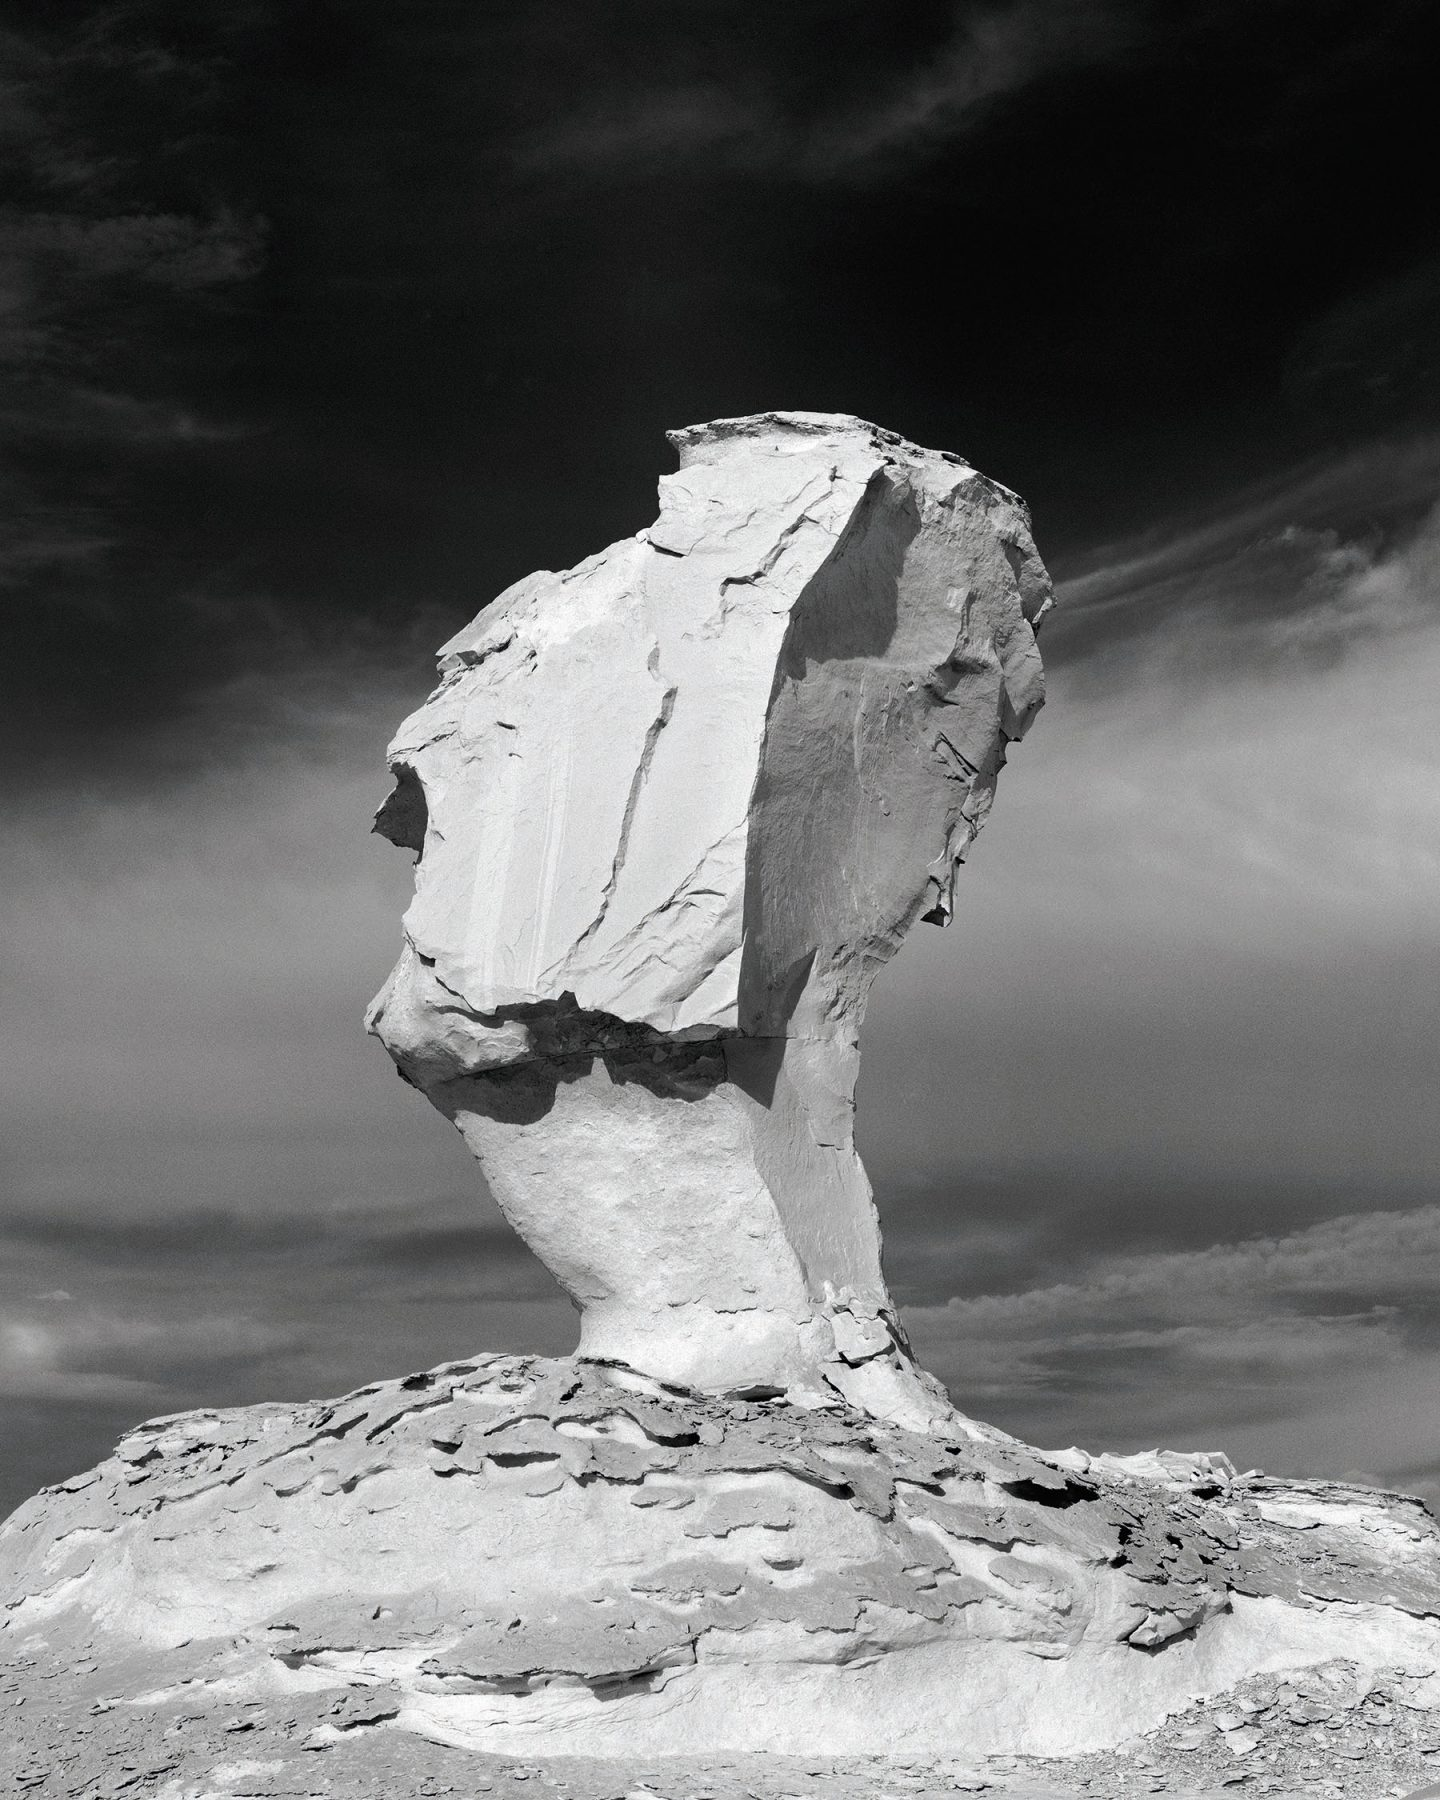 IGNANT-Photography-Darren-Harvey-Regan-The-Erratics-2.1